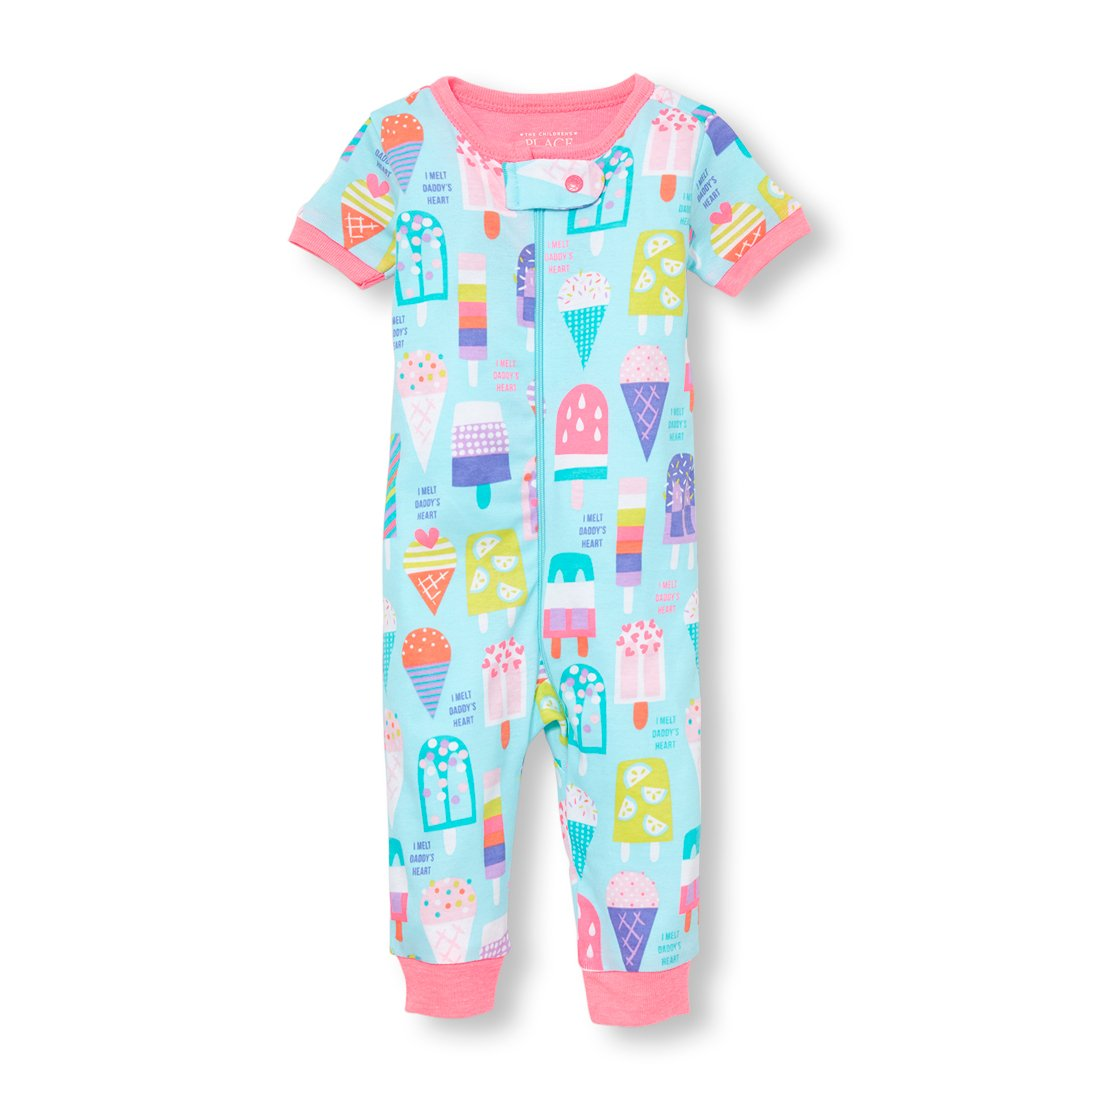 The Children's Place Baby Girls Short Sleeve